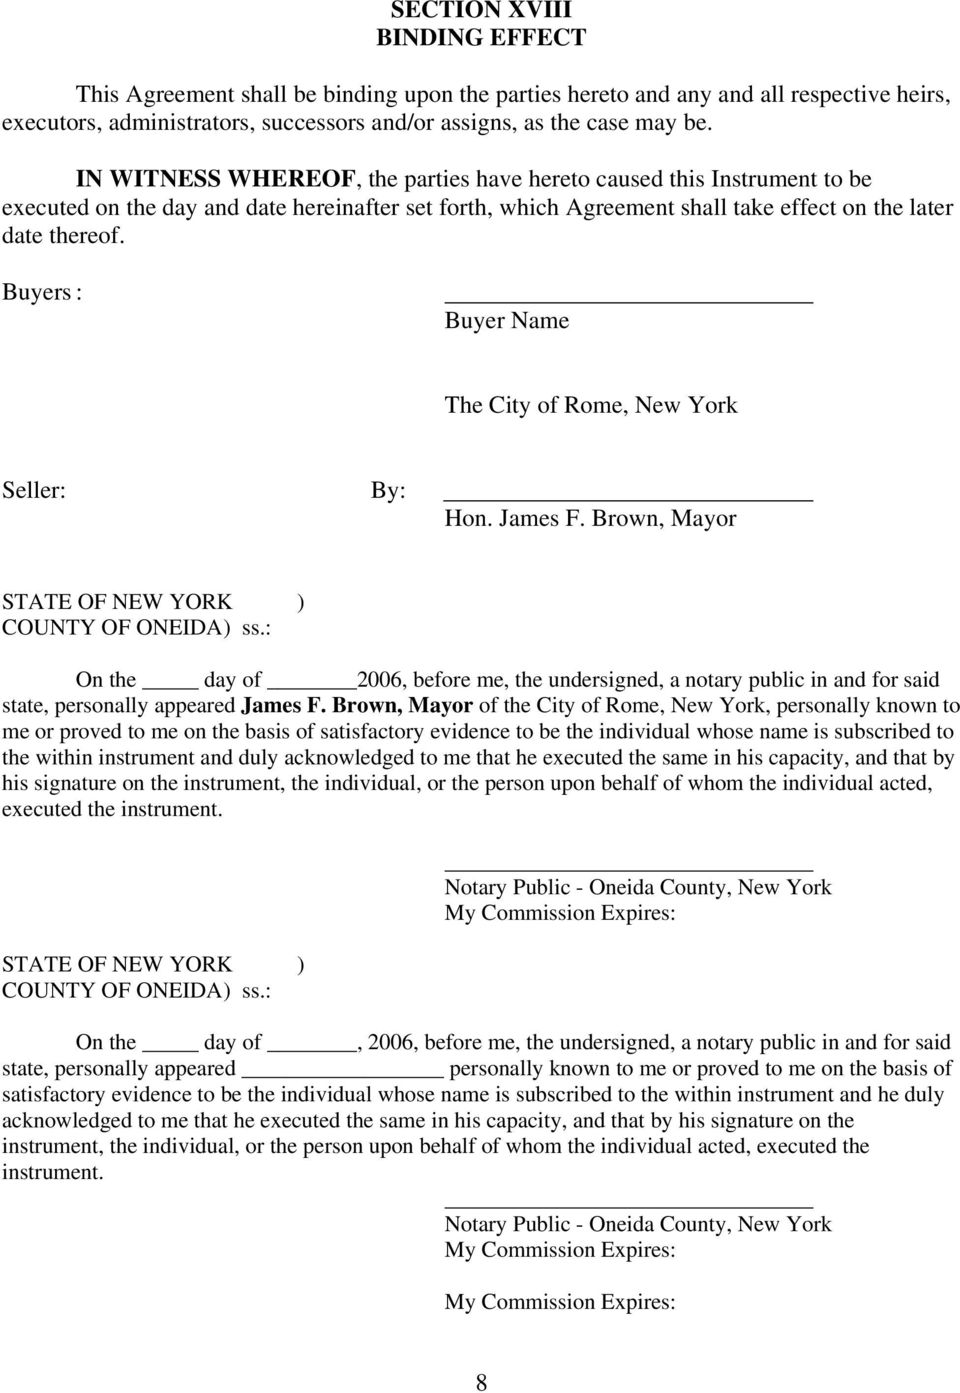 Buyers : Buyer Name The City of Rome, New York Seller: By: Hon. James F. Brown, Mayor STATE OF NEW YORK ) COUNTY OF ONEIDA ) ss.